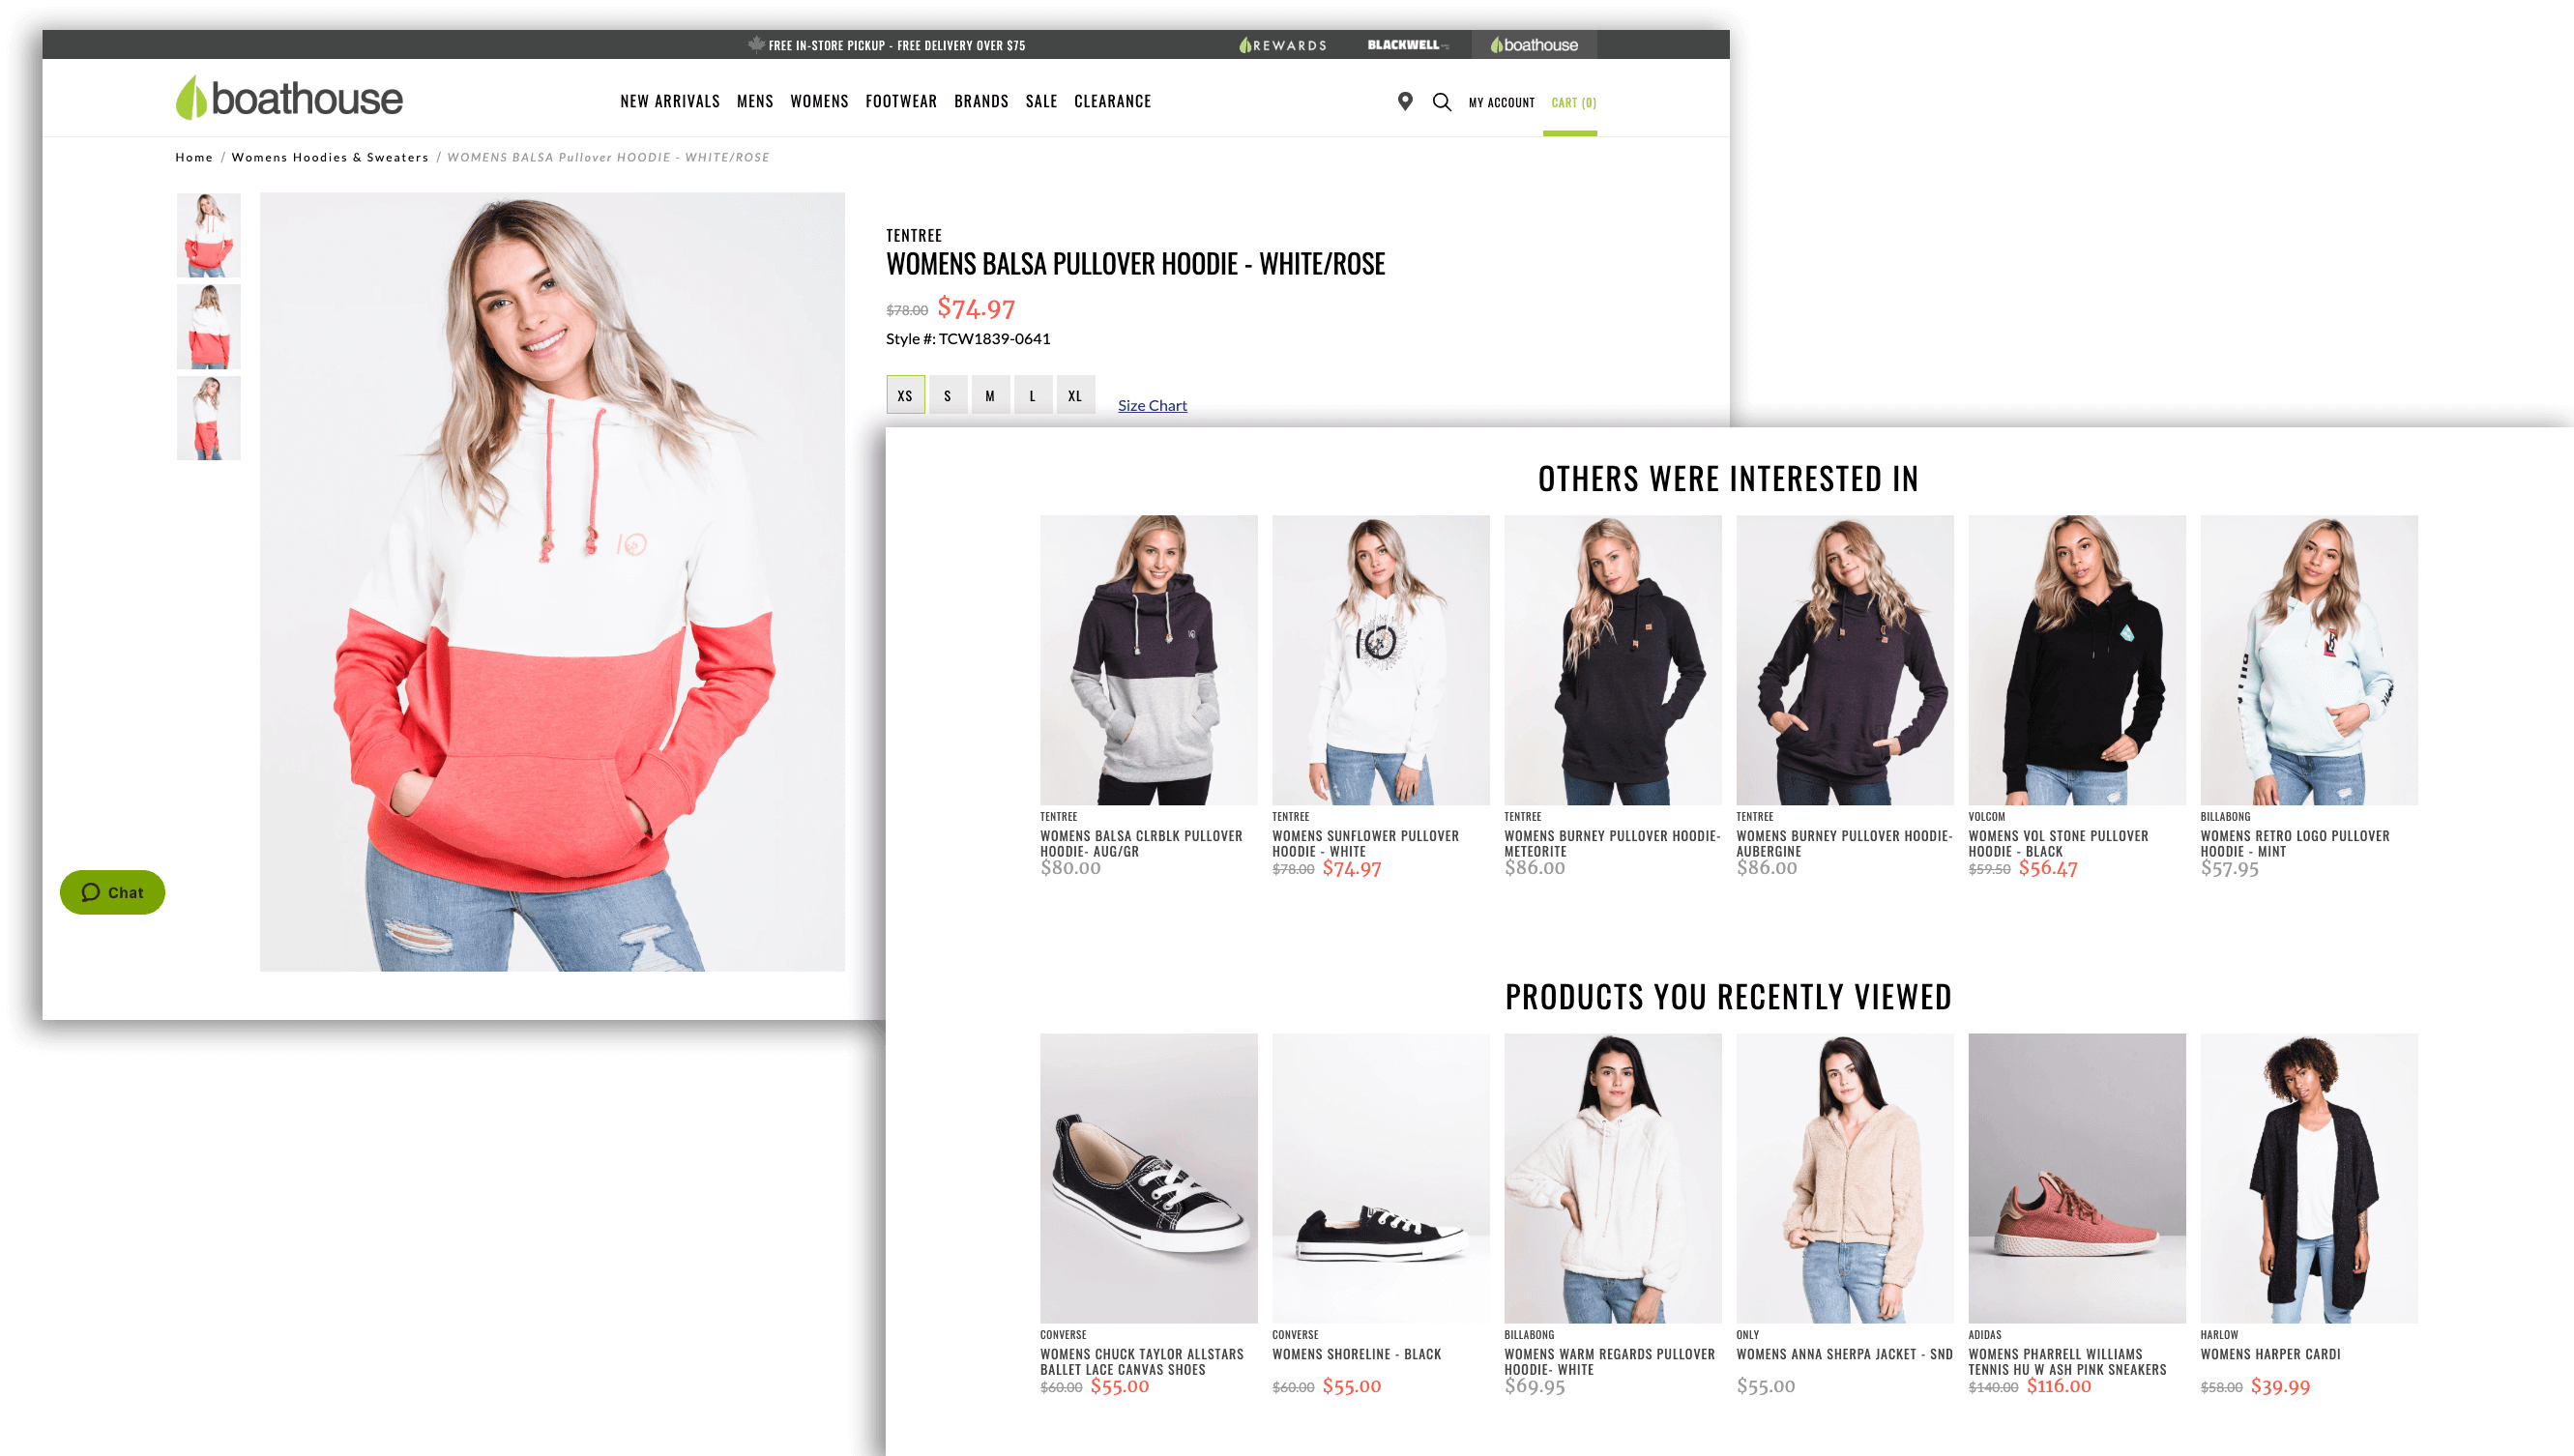 personalization tactics - boathouse product recommendations overlap